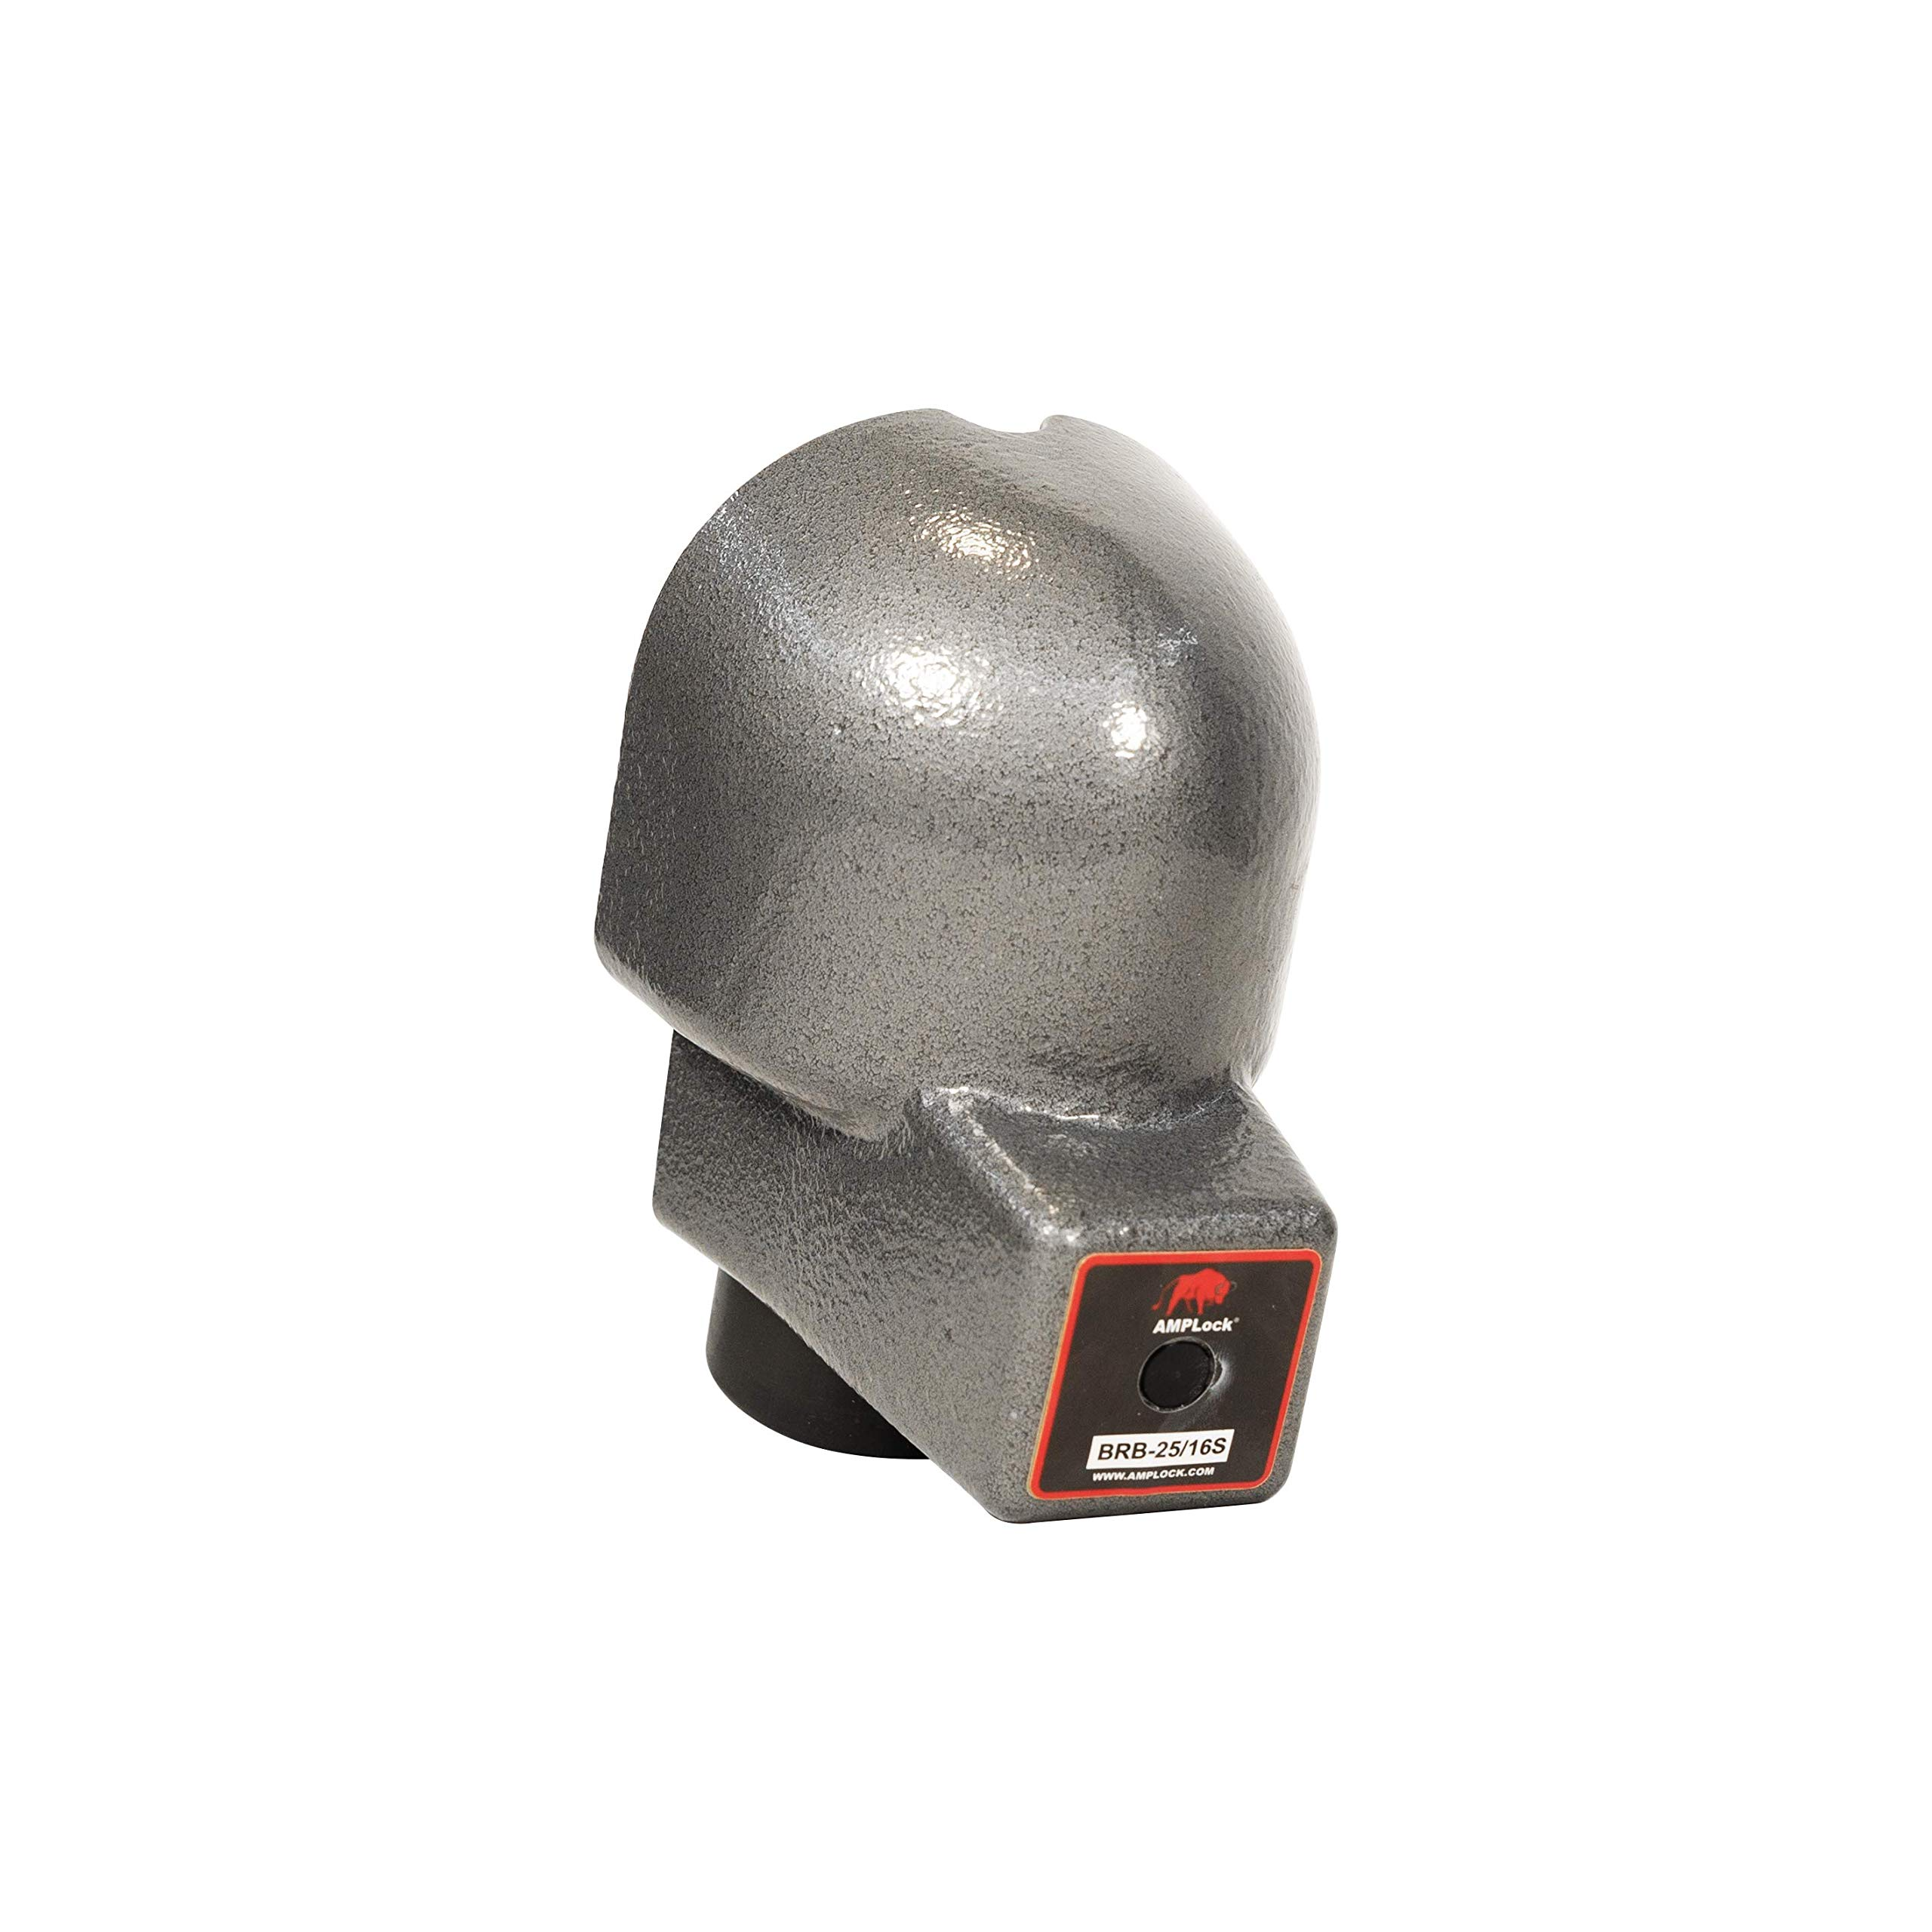 AMPLOCK U-BRB2516S trailer coupler lock (fits specific 2 5/16 inches coupler)